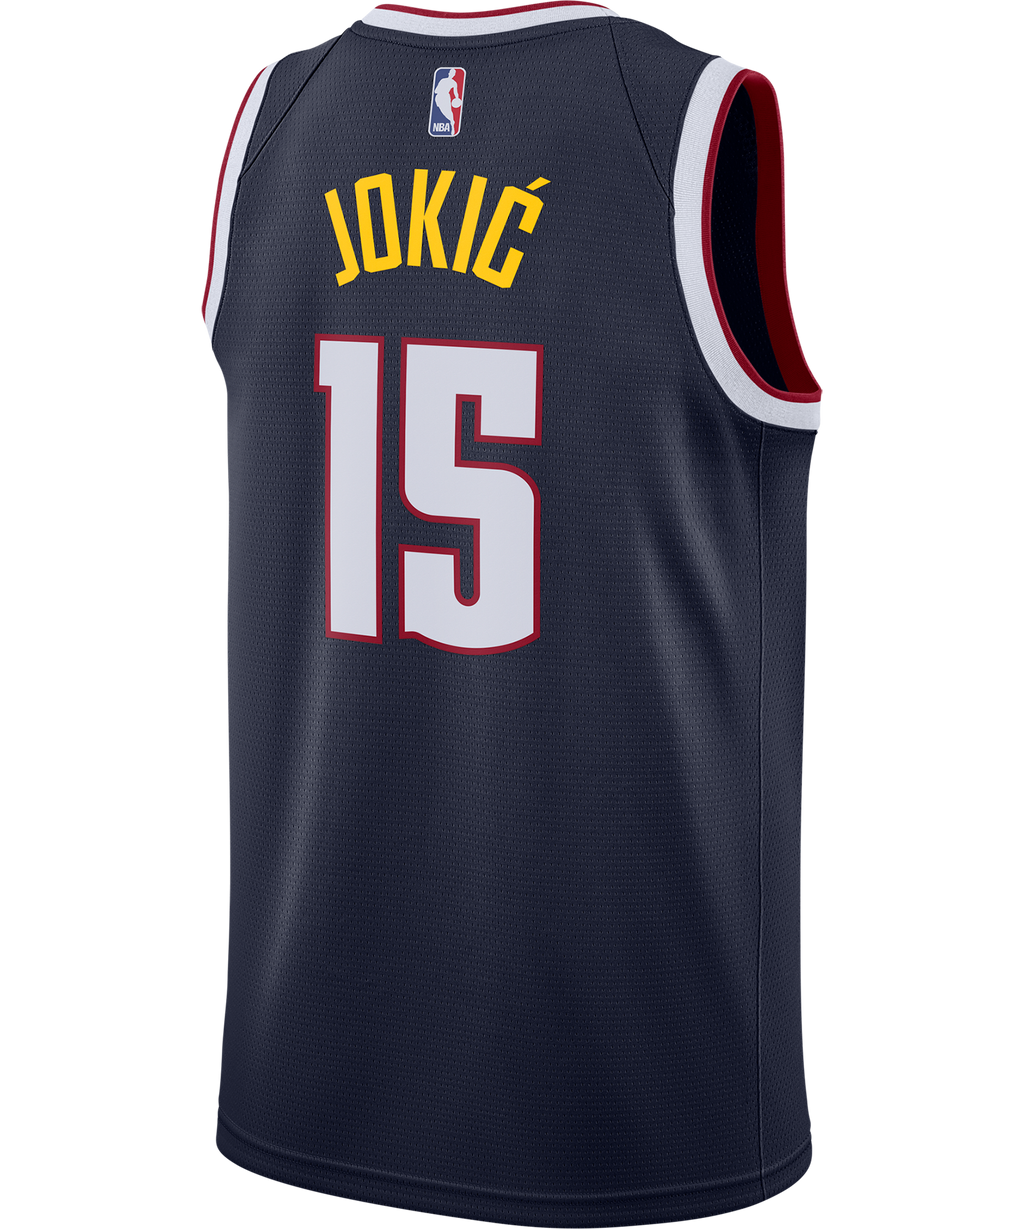 Nikola Jokic Denver Nuggets Nike Icon Edition Jersey